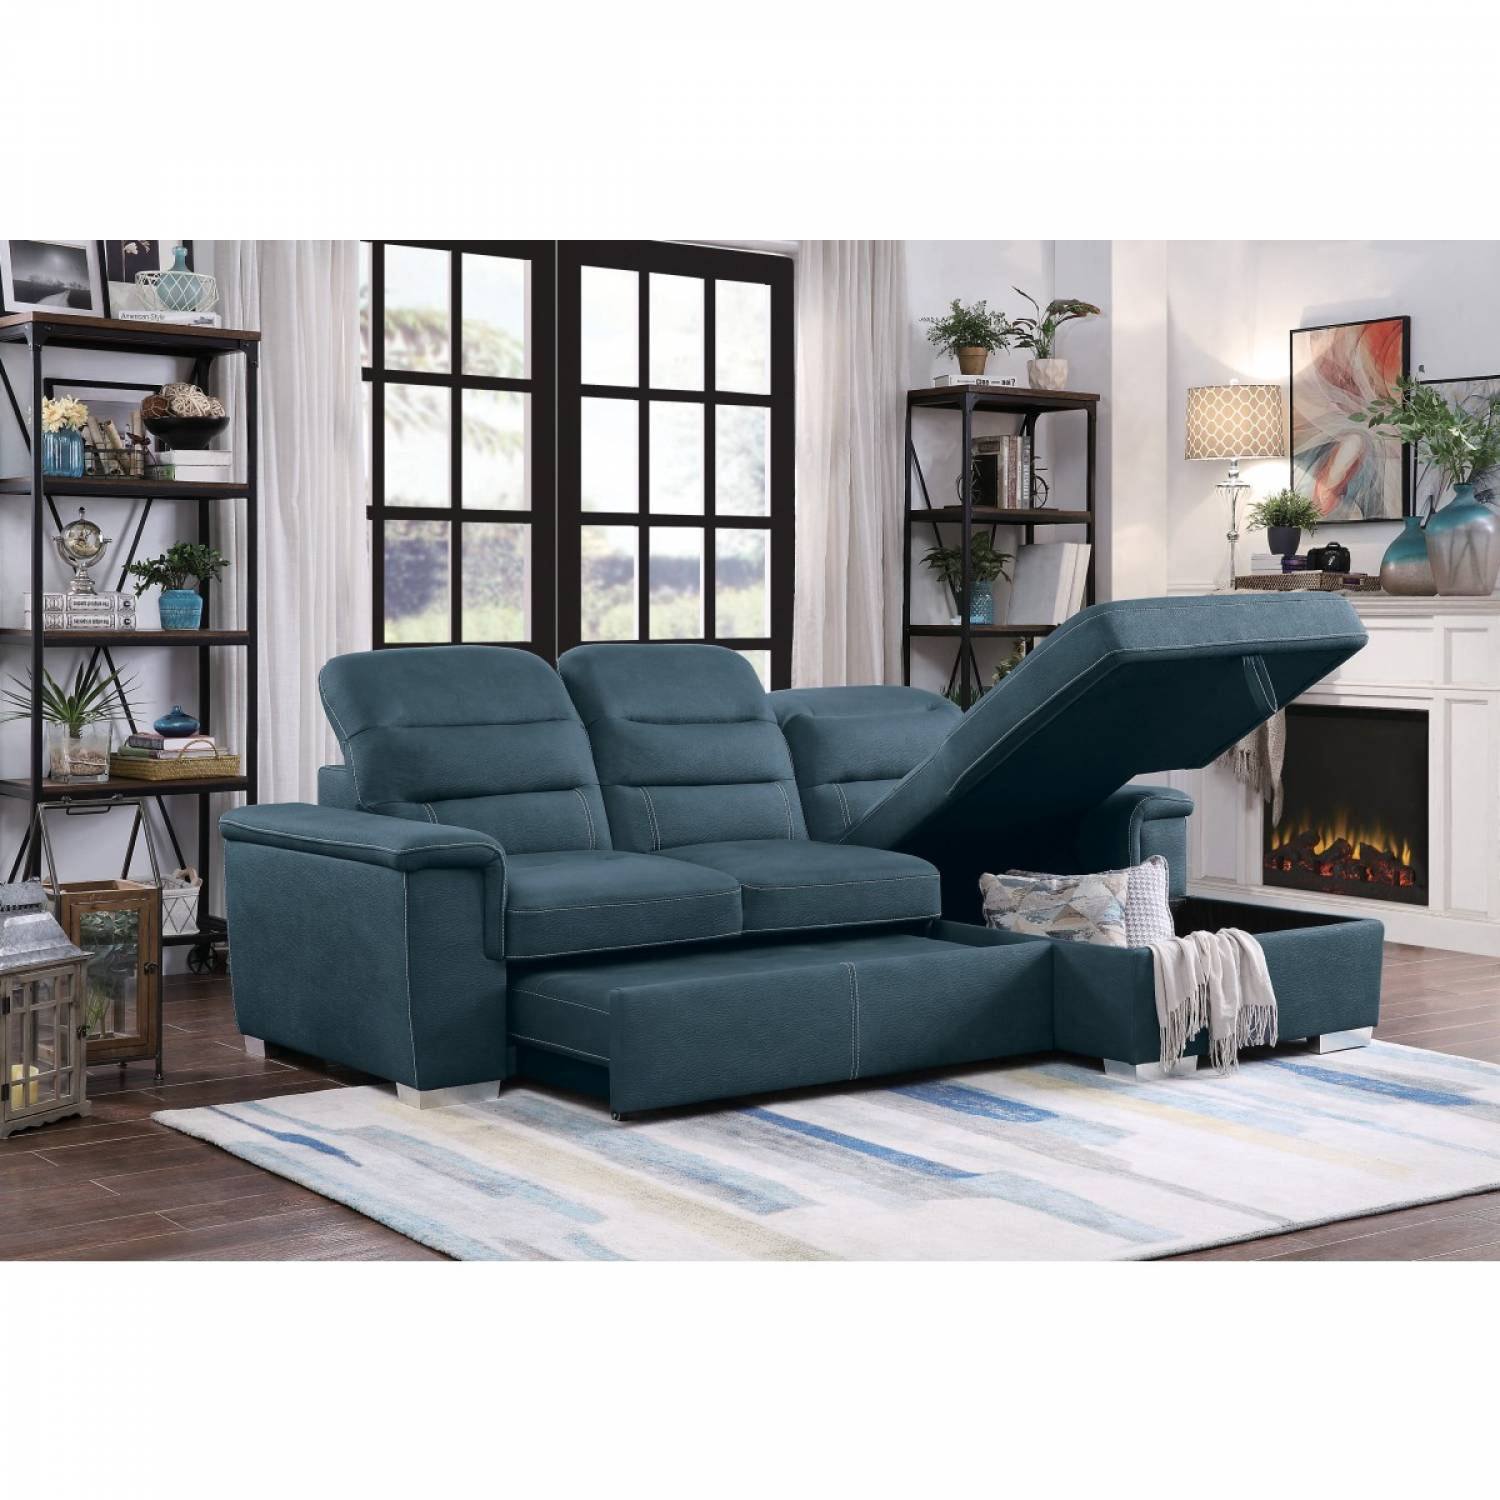 Picture of: 9808bue Sc 2 Piece Sectional With Pull Out Bed And Hidden Storage Alfio